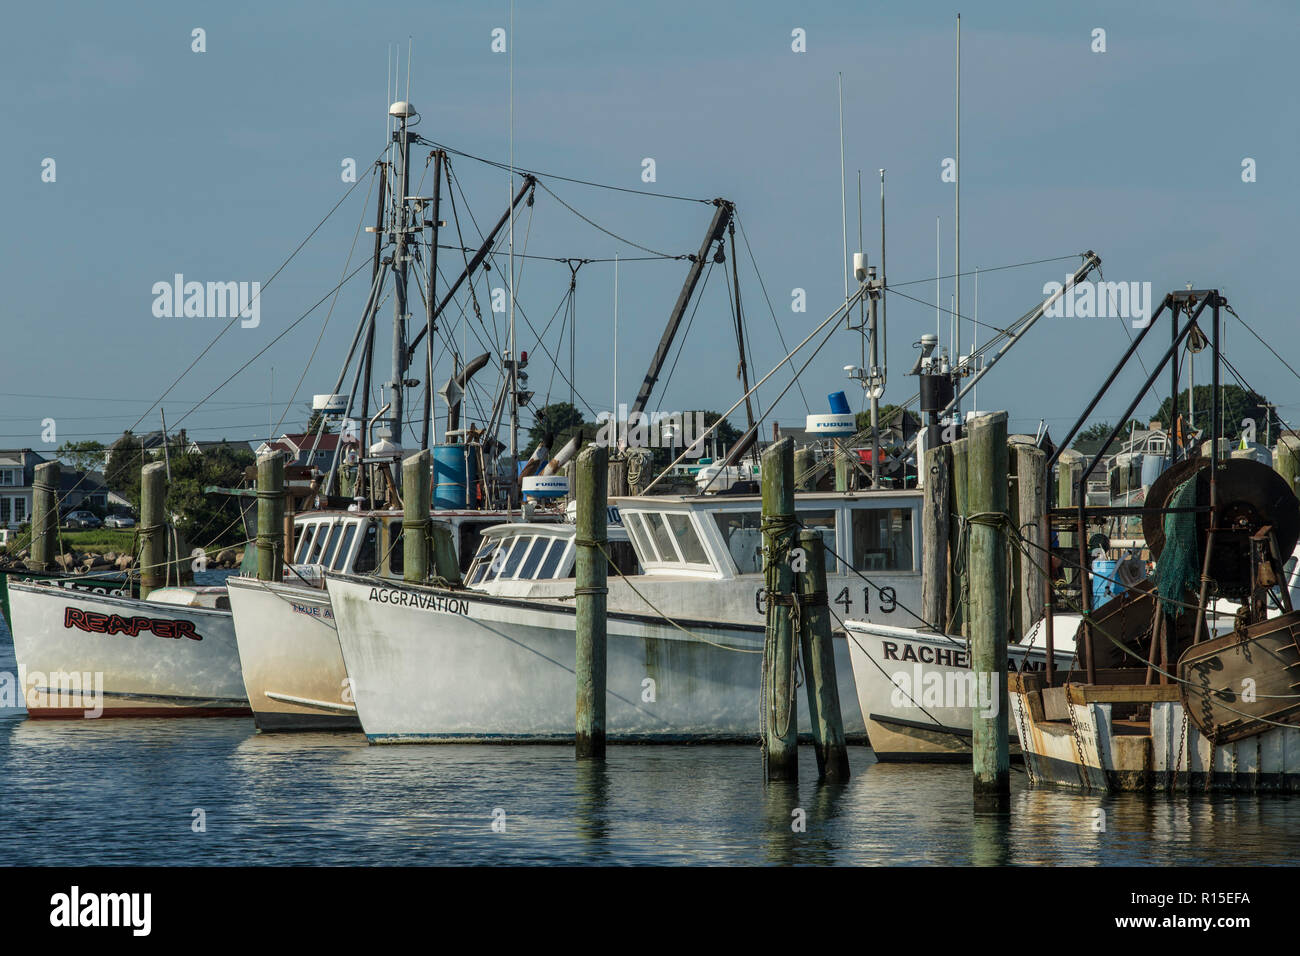 Commercial Fishing Boats, Point Judith Marina, PT Judith, RI. close to the ferry service that transports people back and forth to Block Island, RI. - Stock Image